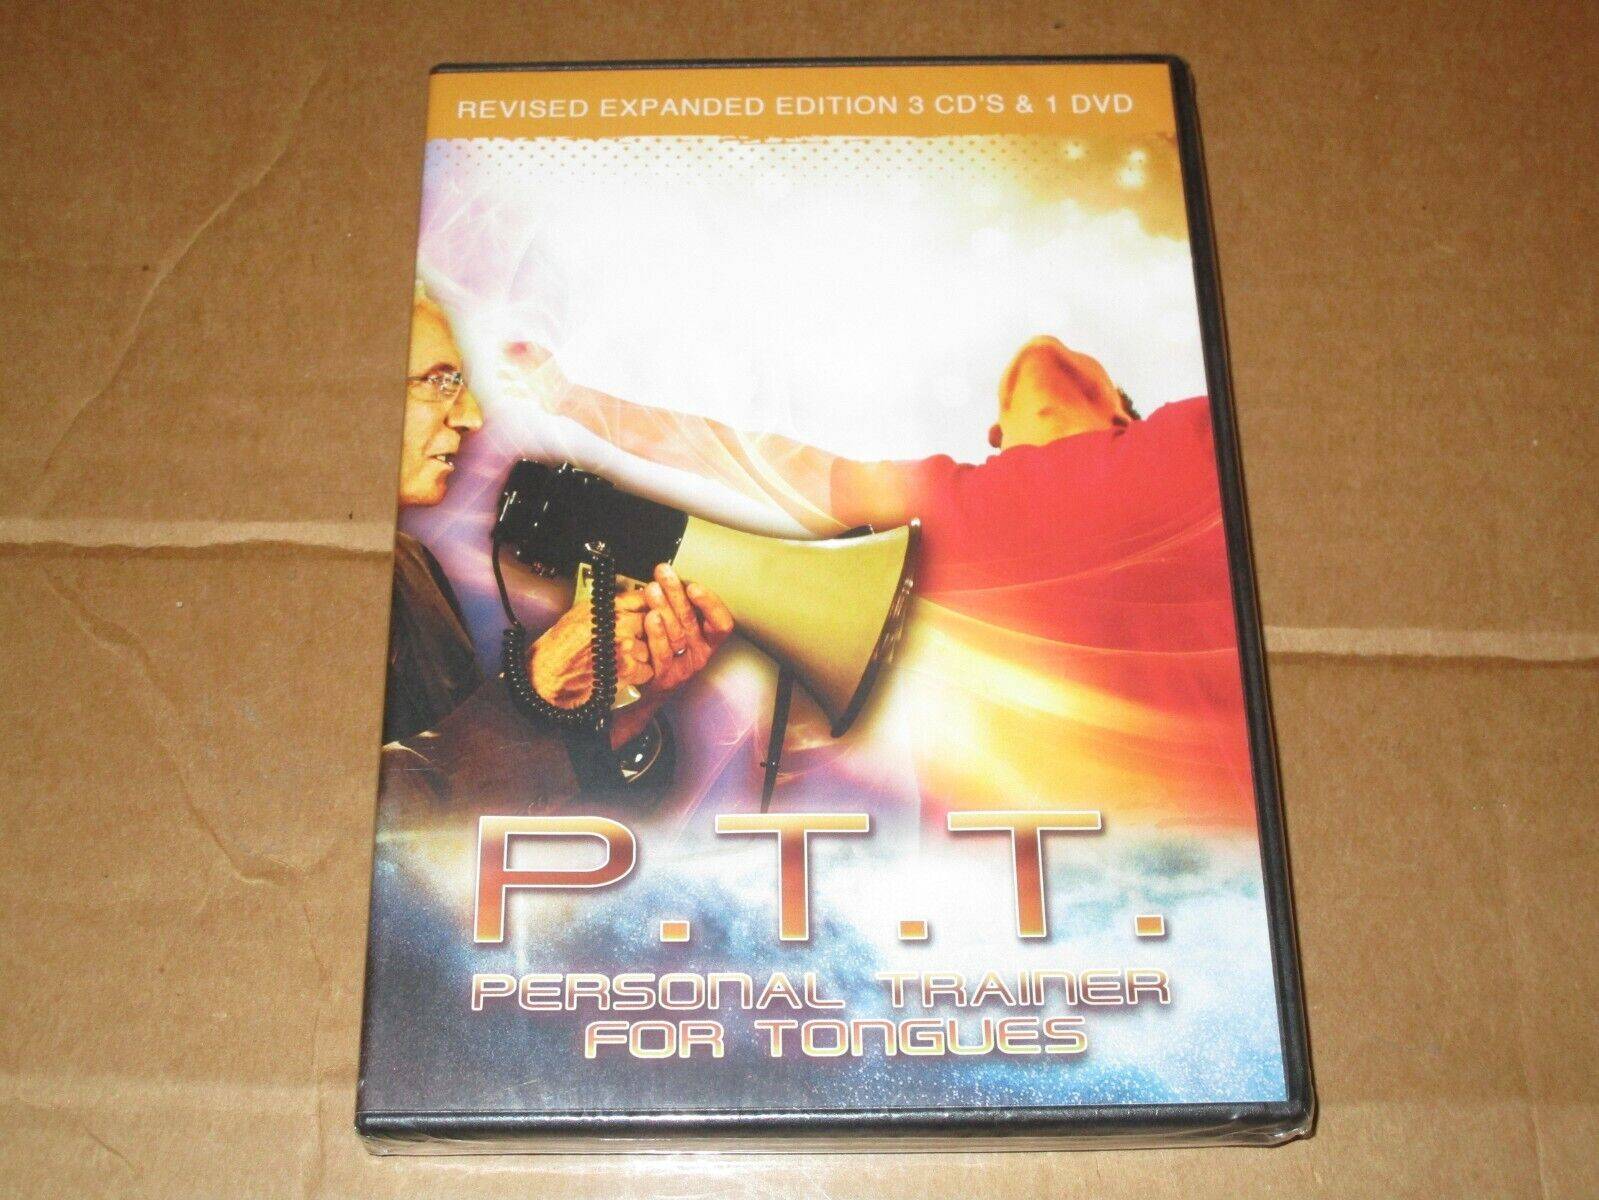 offer Get it P.t.t. Personal Trainer for Tongues 3 CDs 1